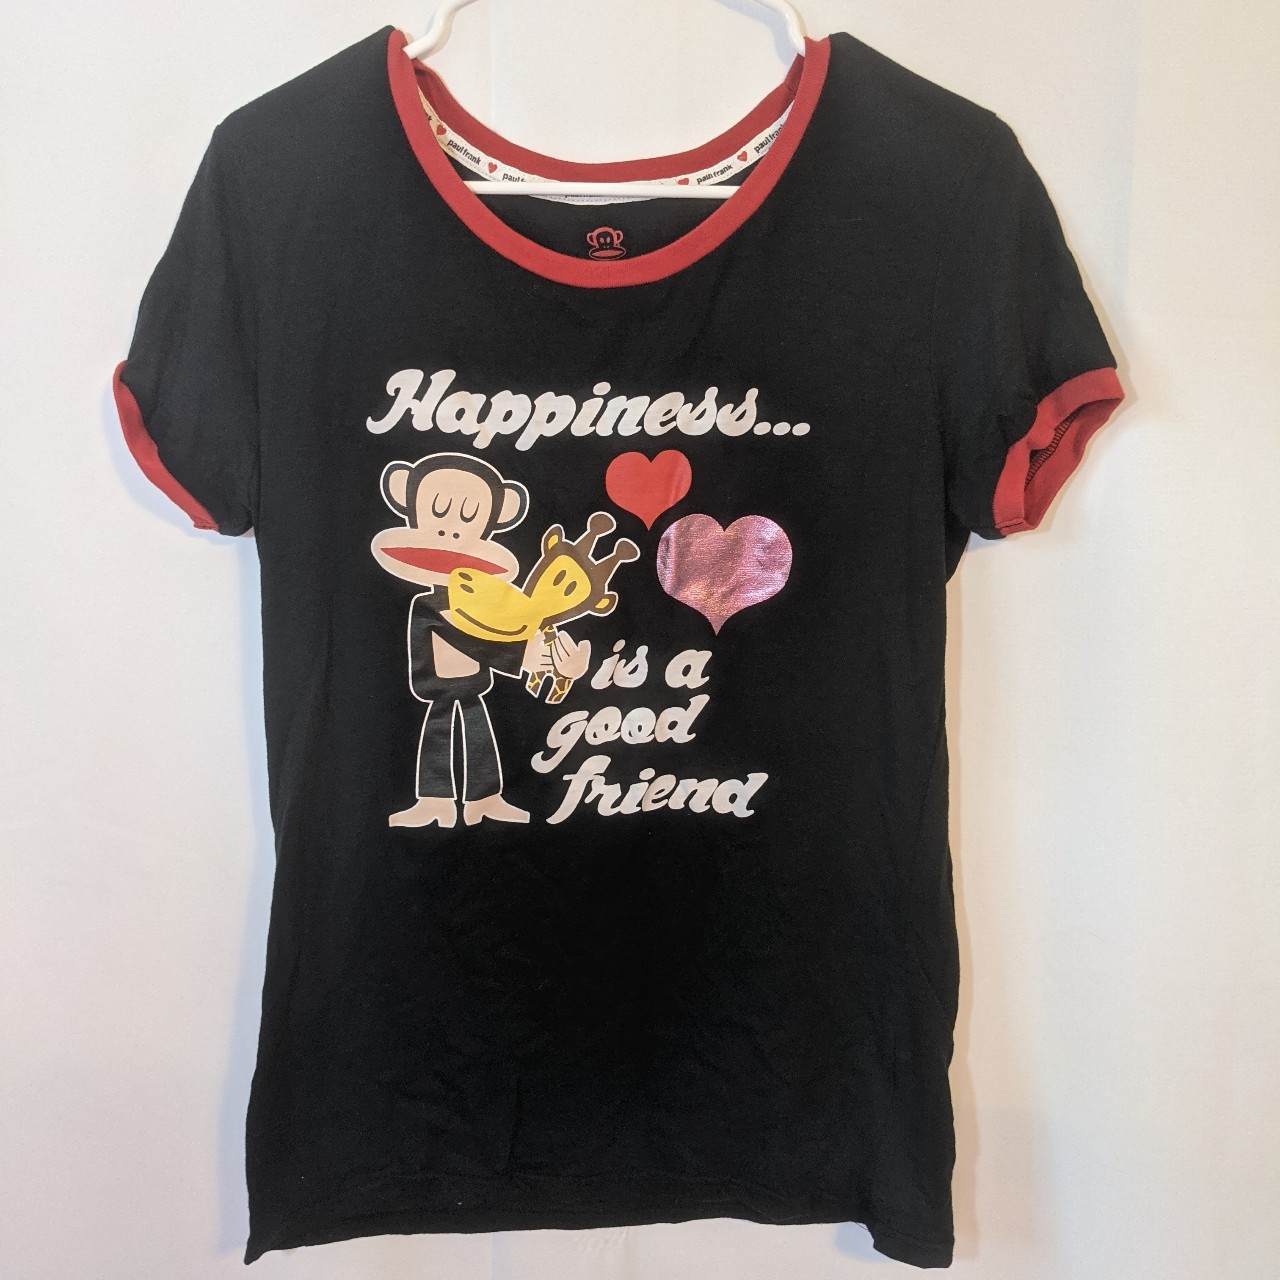 Product Image 1 - NWOT Paul Frank deadstock t-shirt. Great